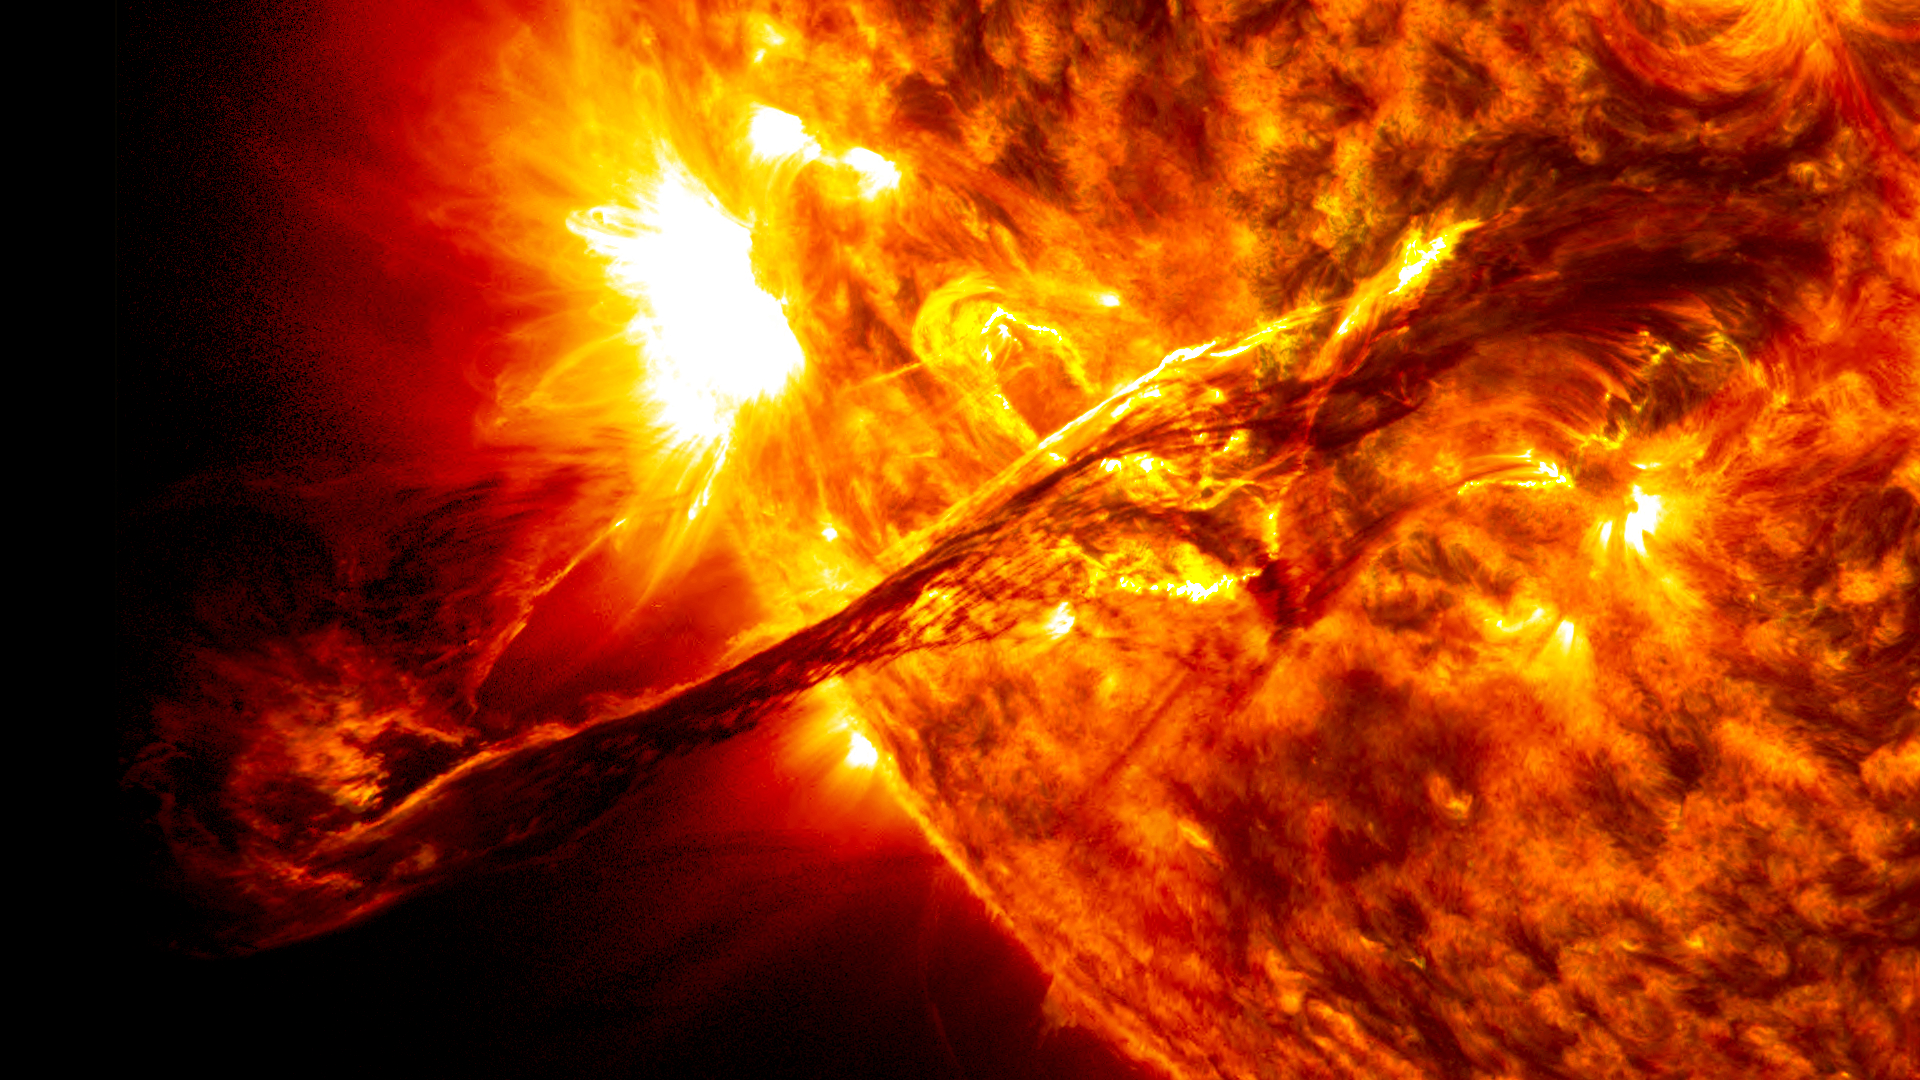 The Sun can release giant solar flares and prominence.